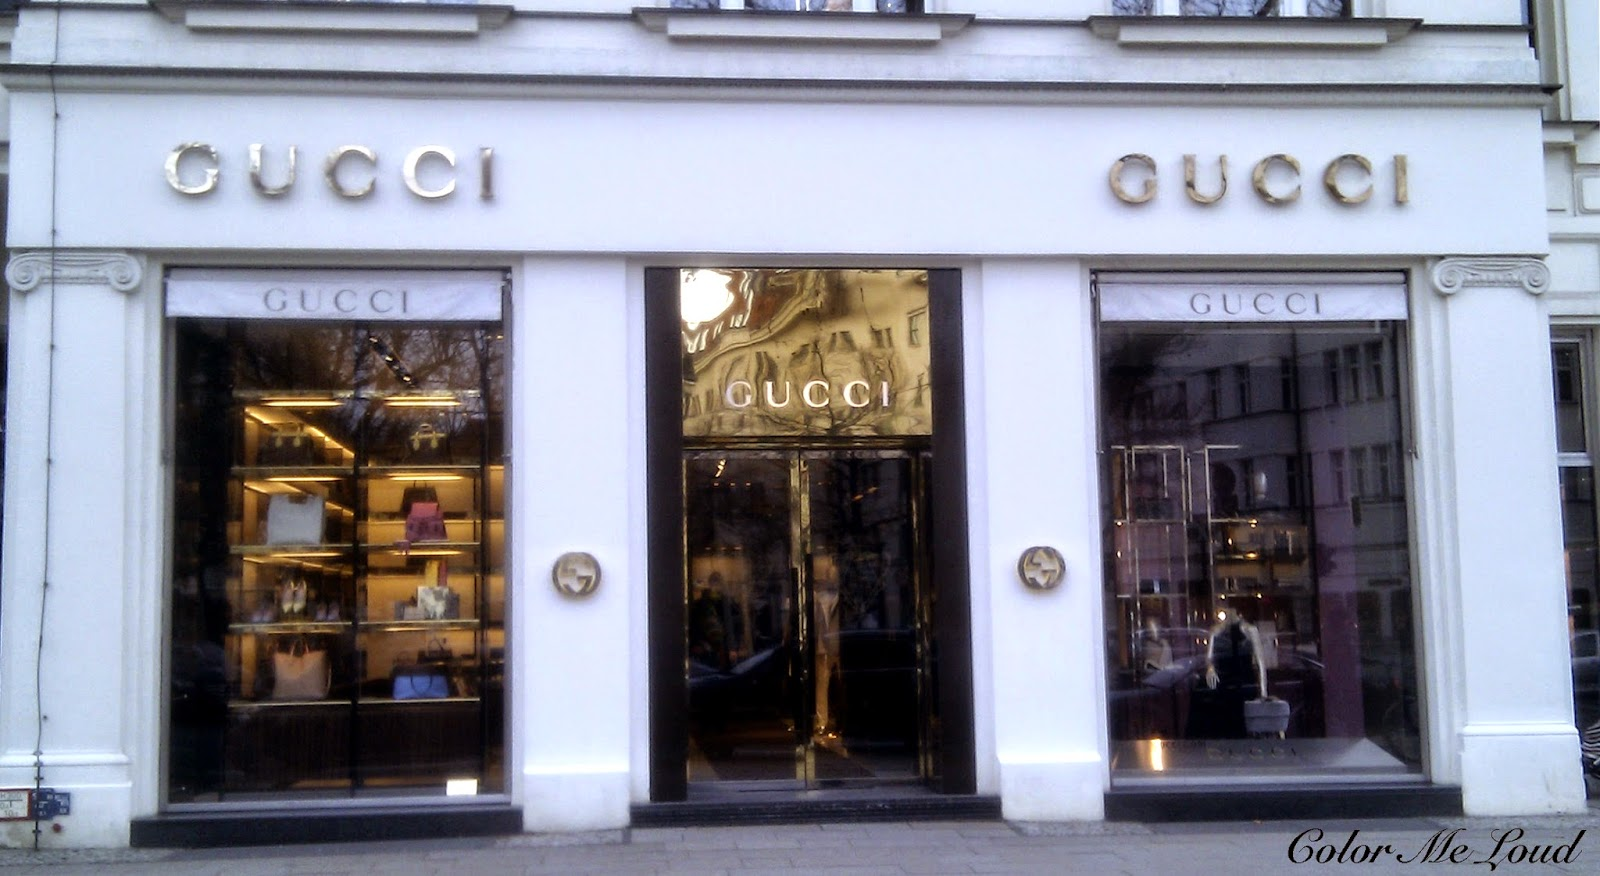 Gucci Store in Kurfürstendamm, Berlin